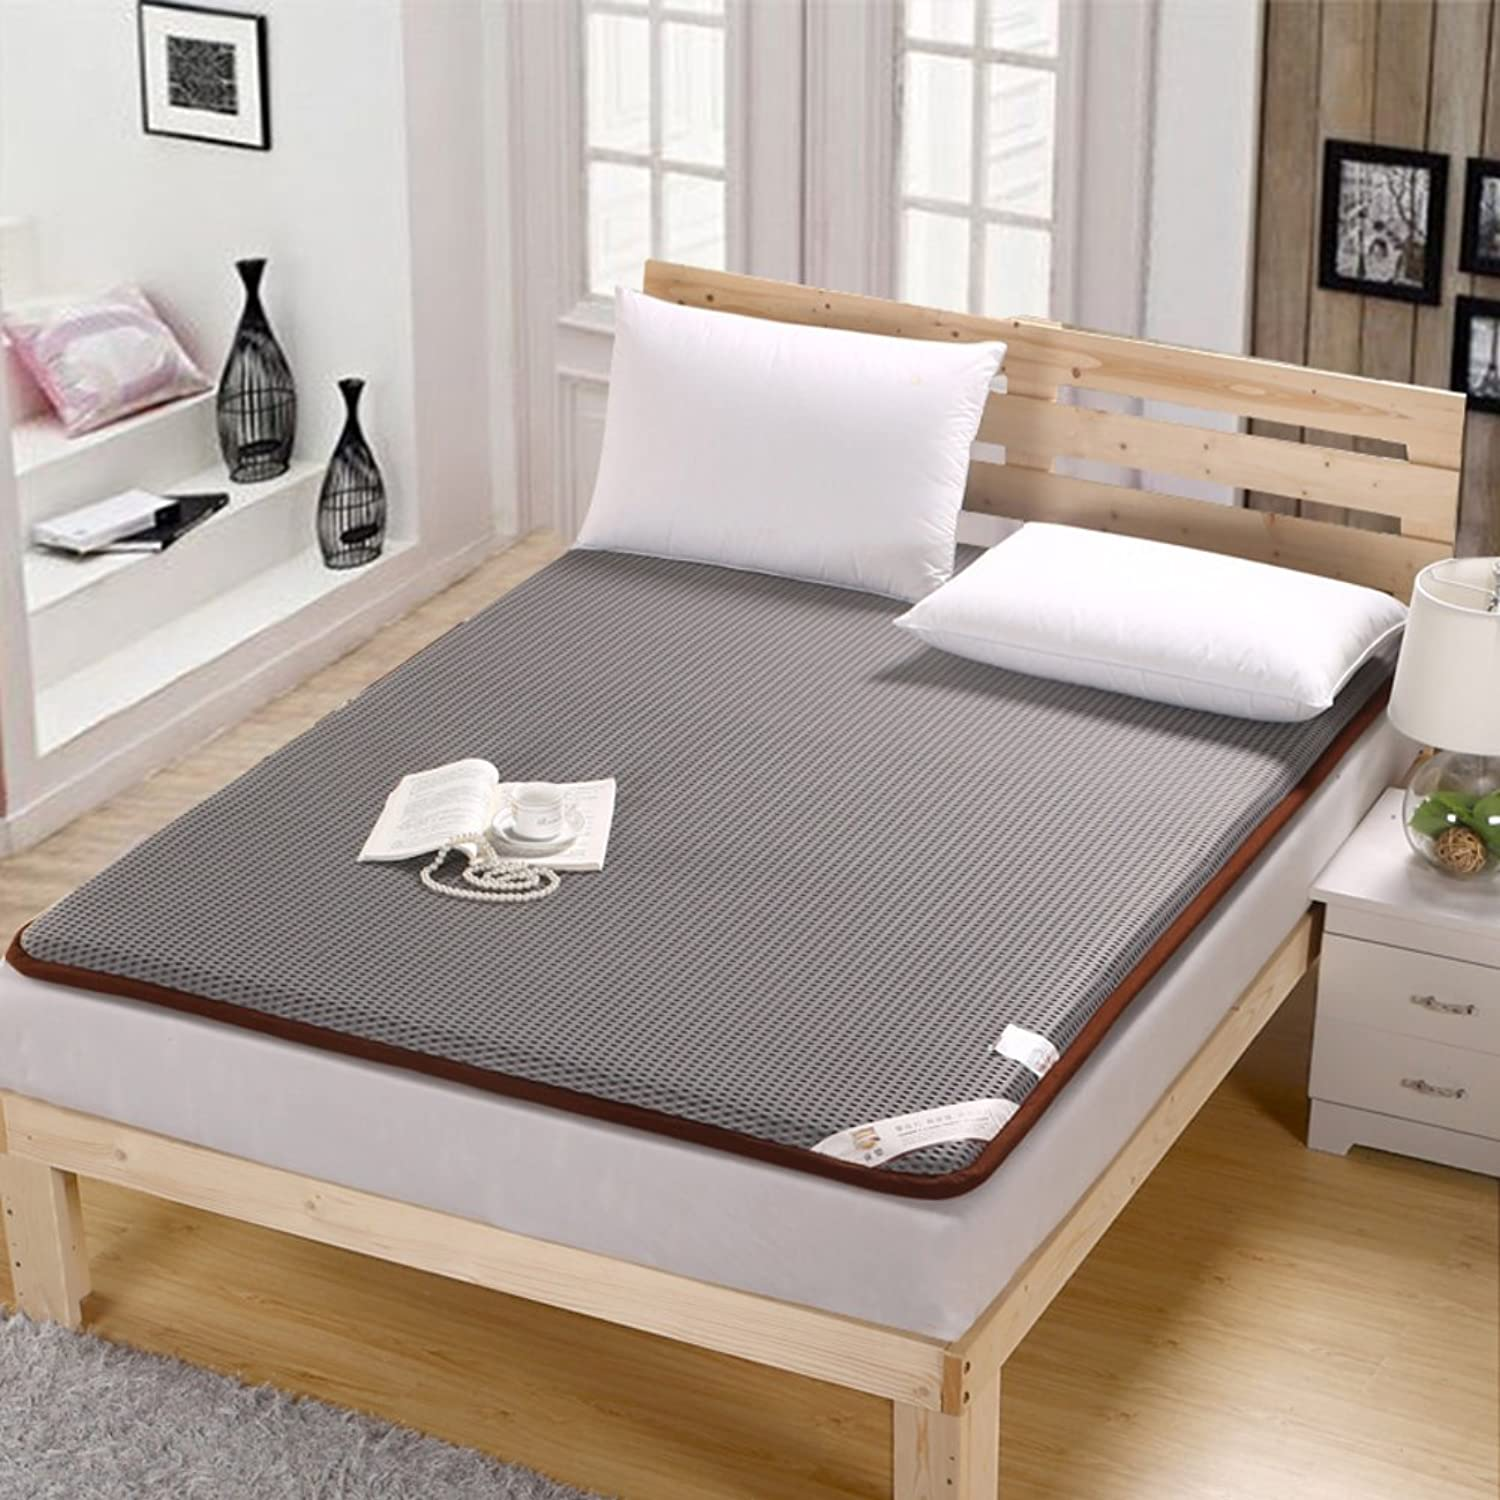 Non-Slip Breathable Mattress,Thicken Double Sleeping Pad,Tatami Foldable Dormitory Mat-A 180x200cm(71x79inch)